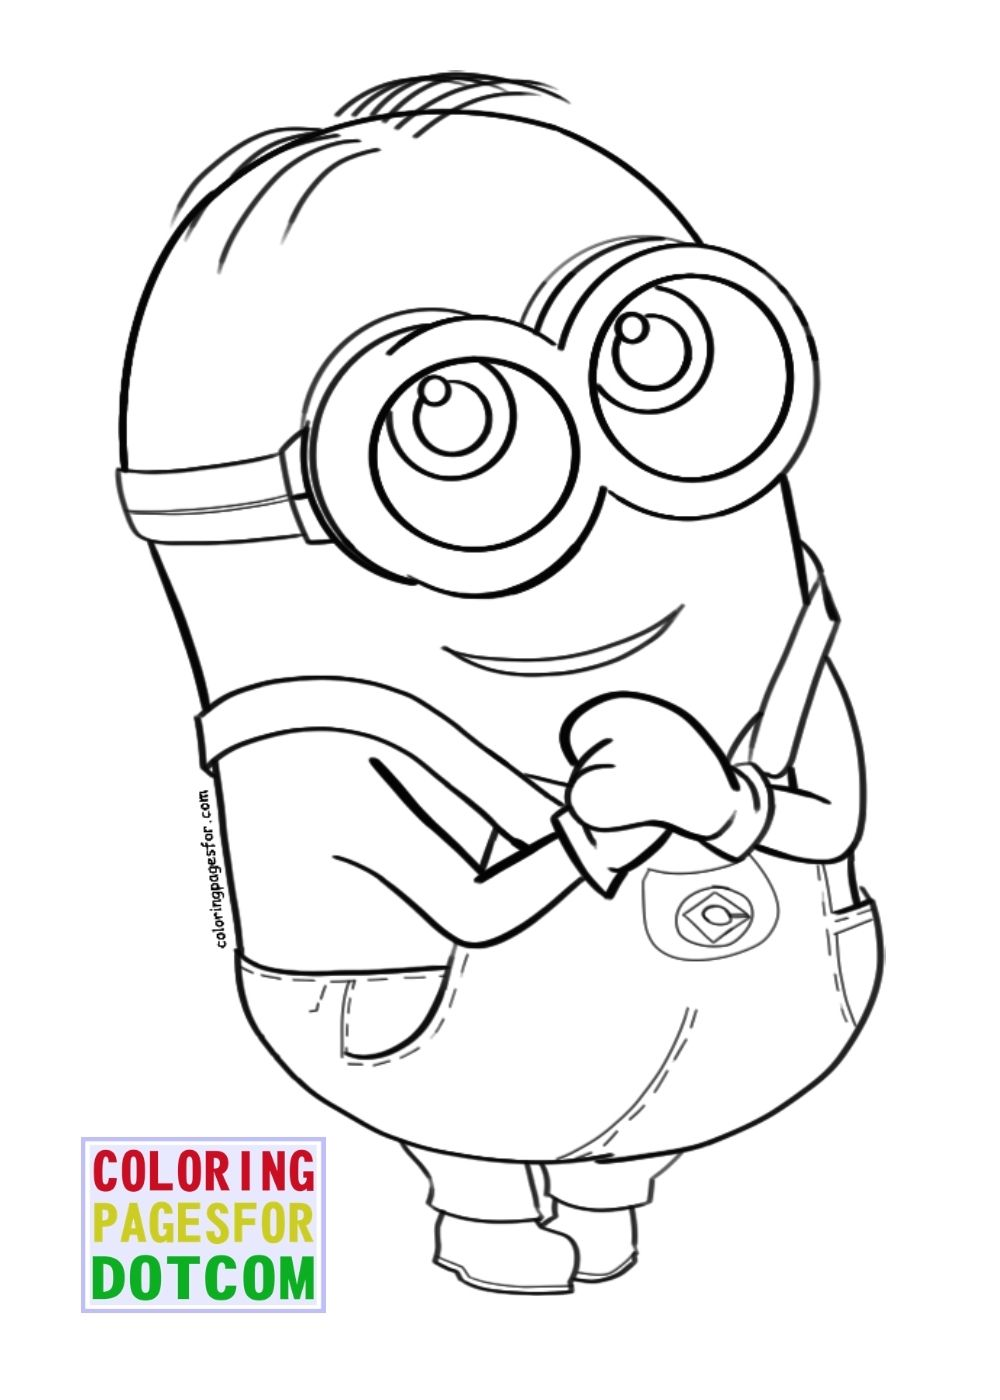 minion coloring pages pdf Dexterity Minions Coloring Pages Resume Format Download Pdf | Kids  minion coloring pages pdf